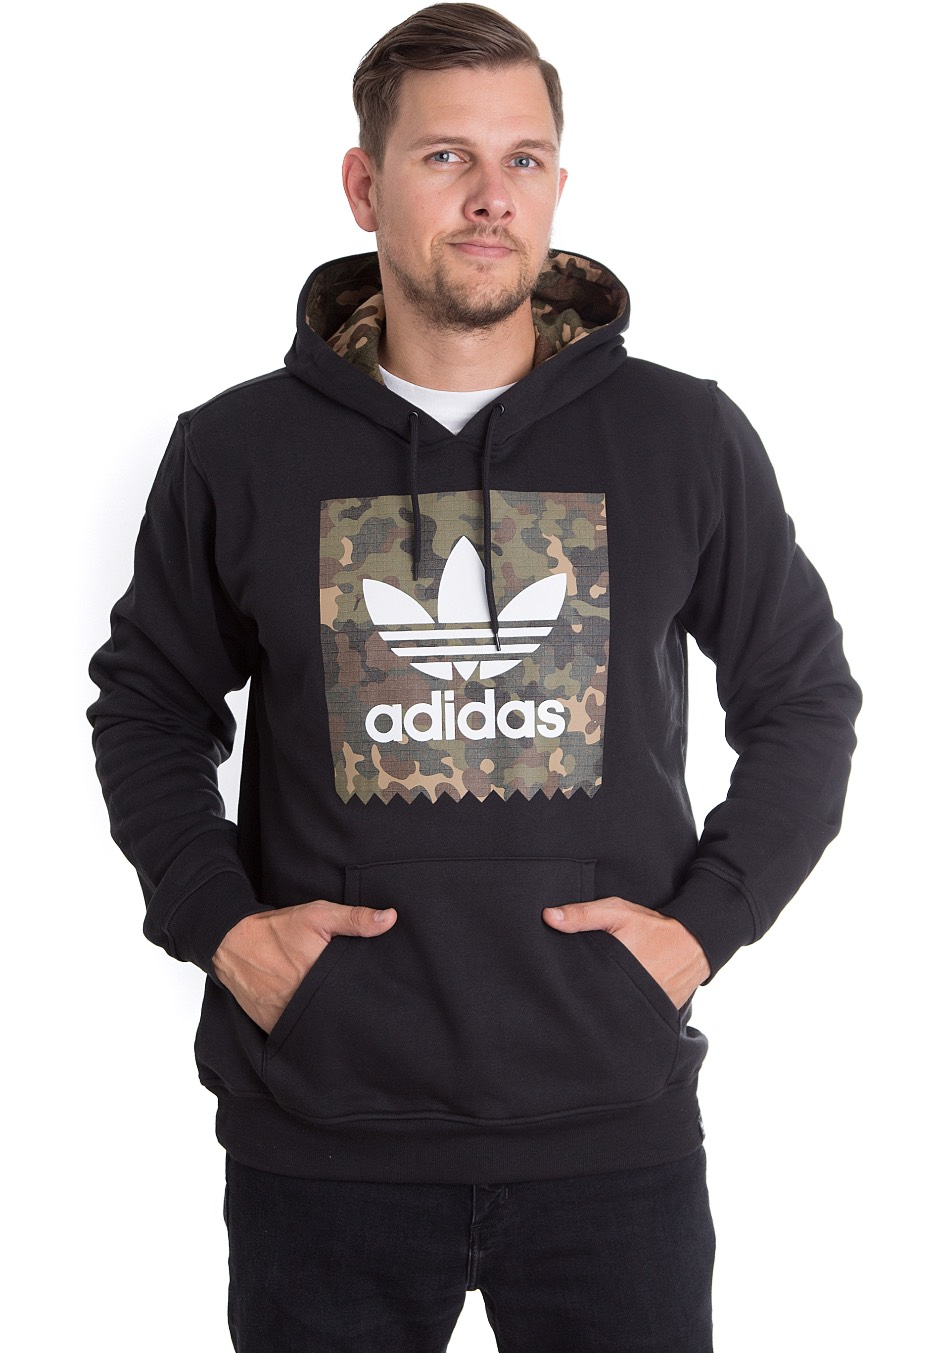 Adidas - Blackbird Camo Black Camo Print - Hoodie - Streetwear Shop -  Impericon.com Worldwide db94a2368208